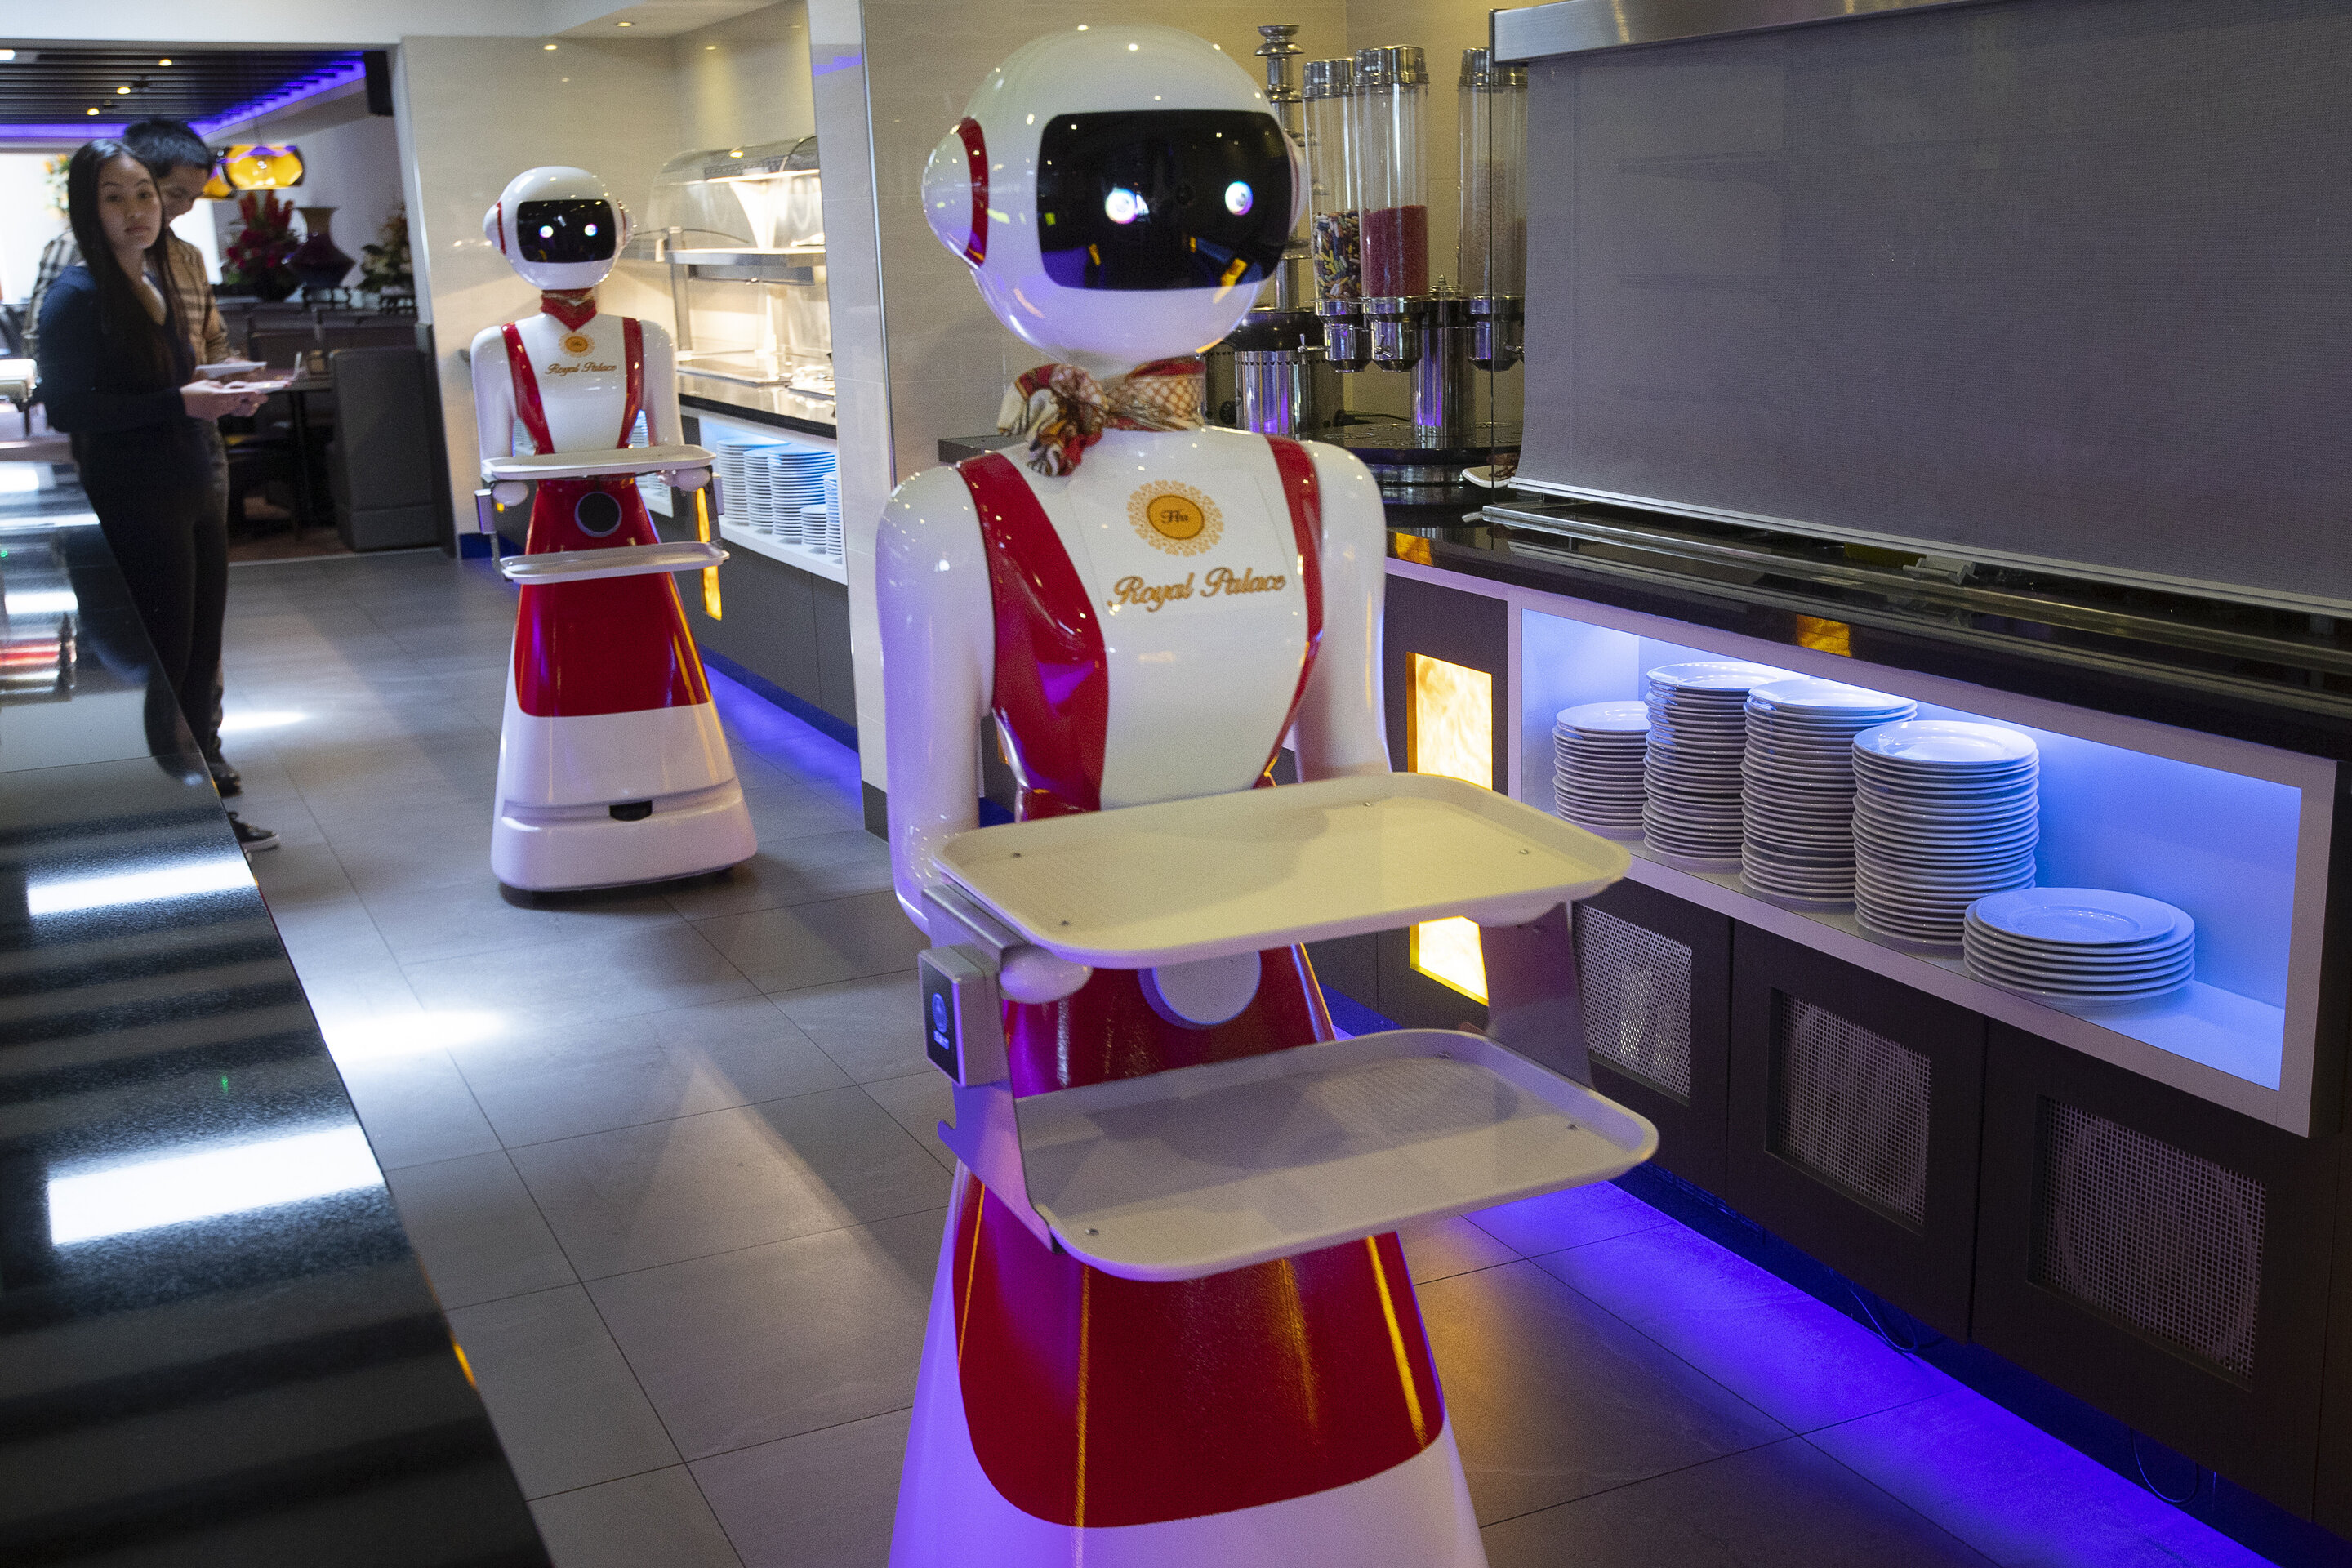 Good day and welcome: robotic waiters to the rescue amid virus